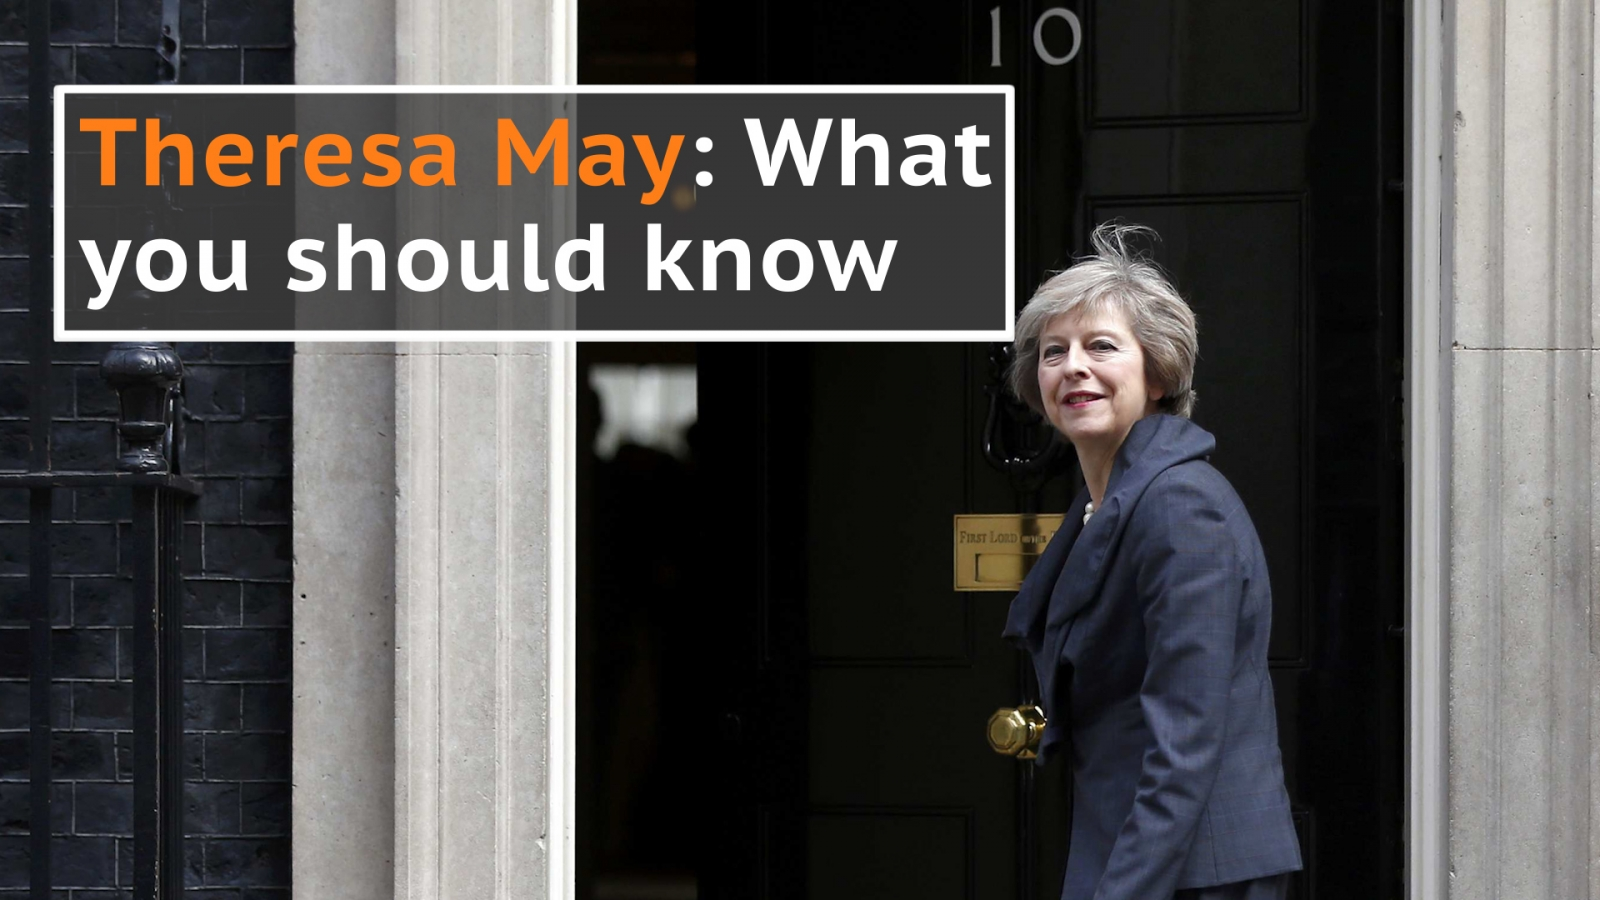 Theresa May: What you should know